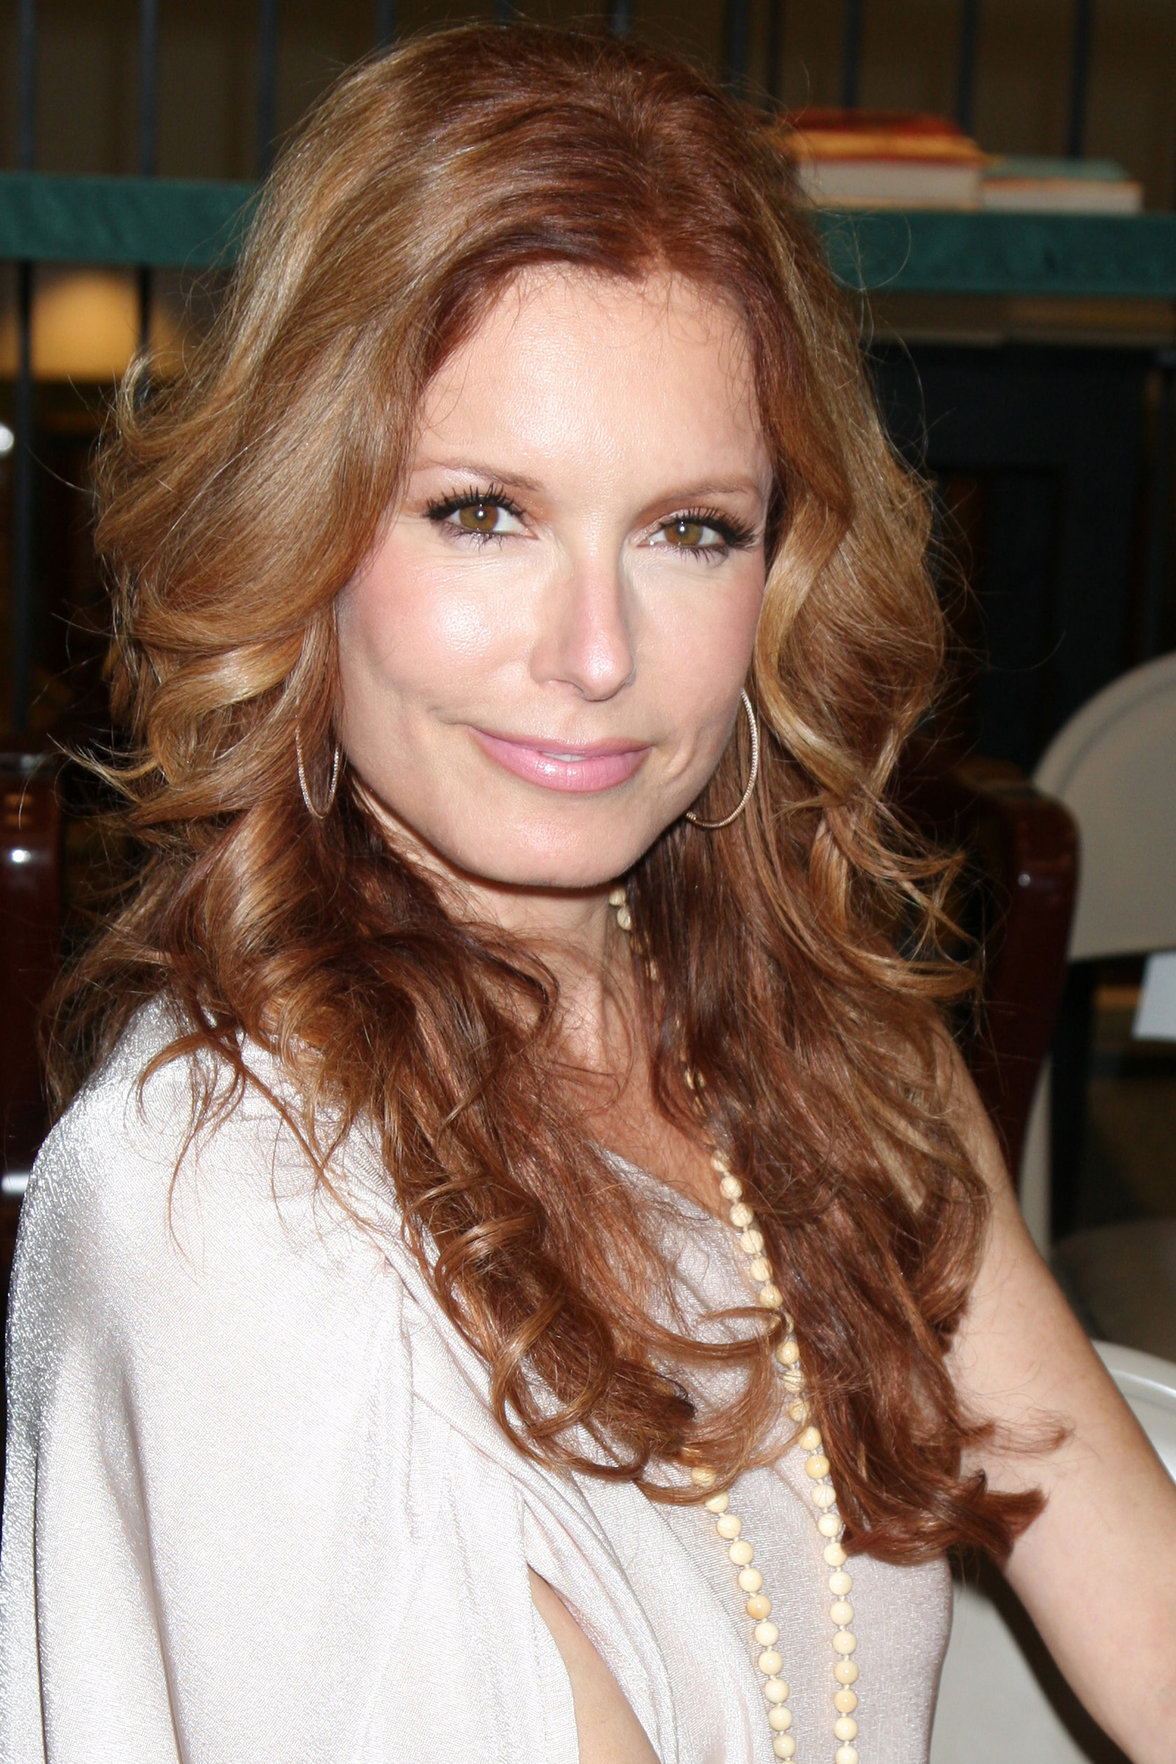 Tracey Bregman - Attends the book signing for William Bell Biography at Barnes & Noble (Aug 18, 2012)